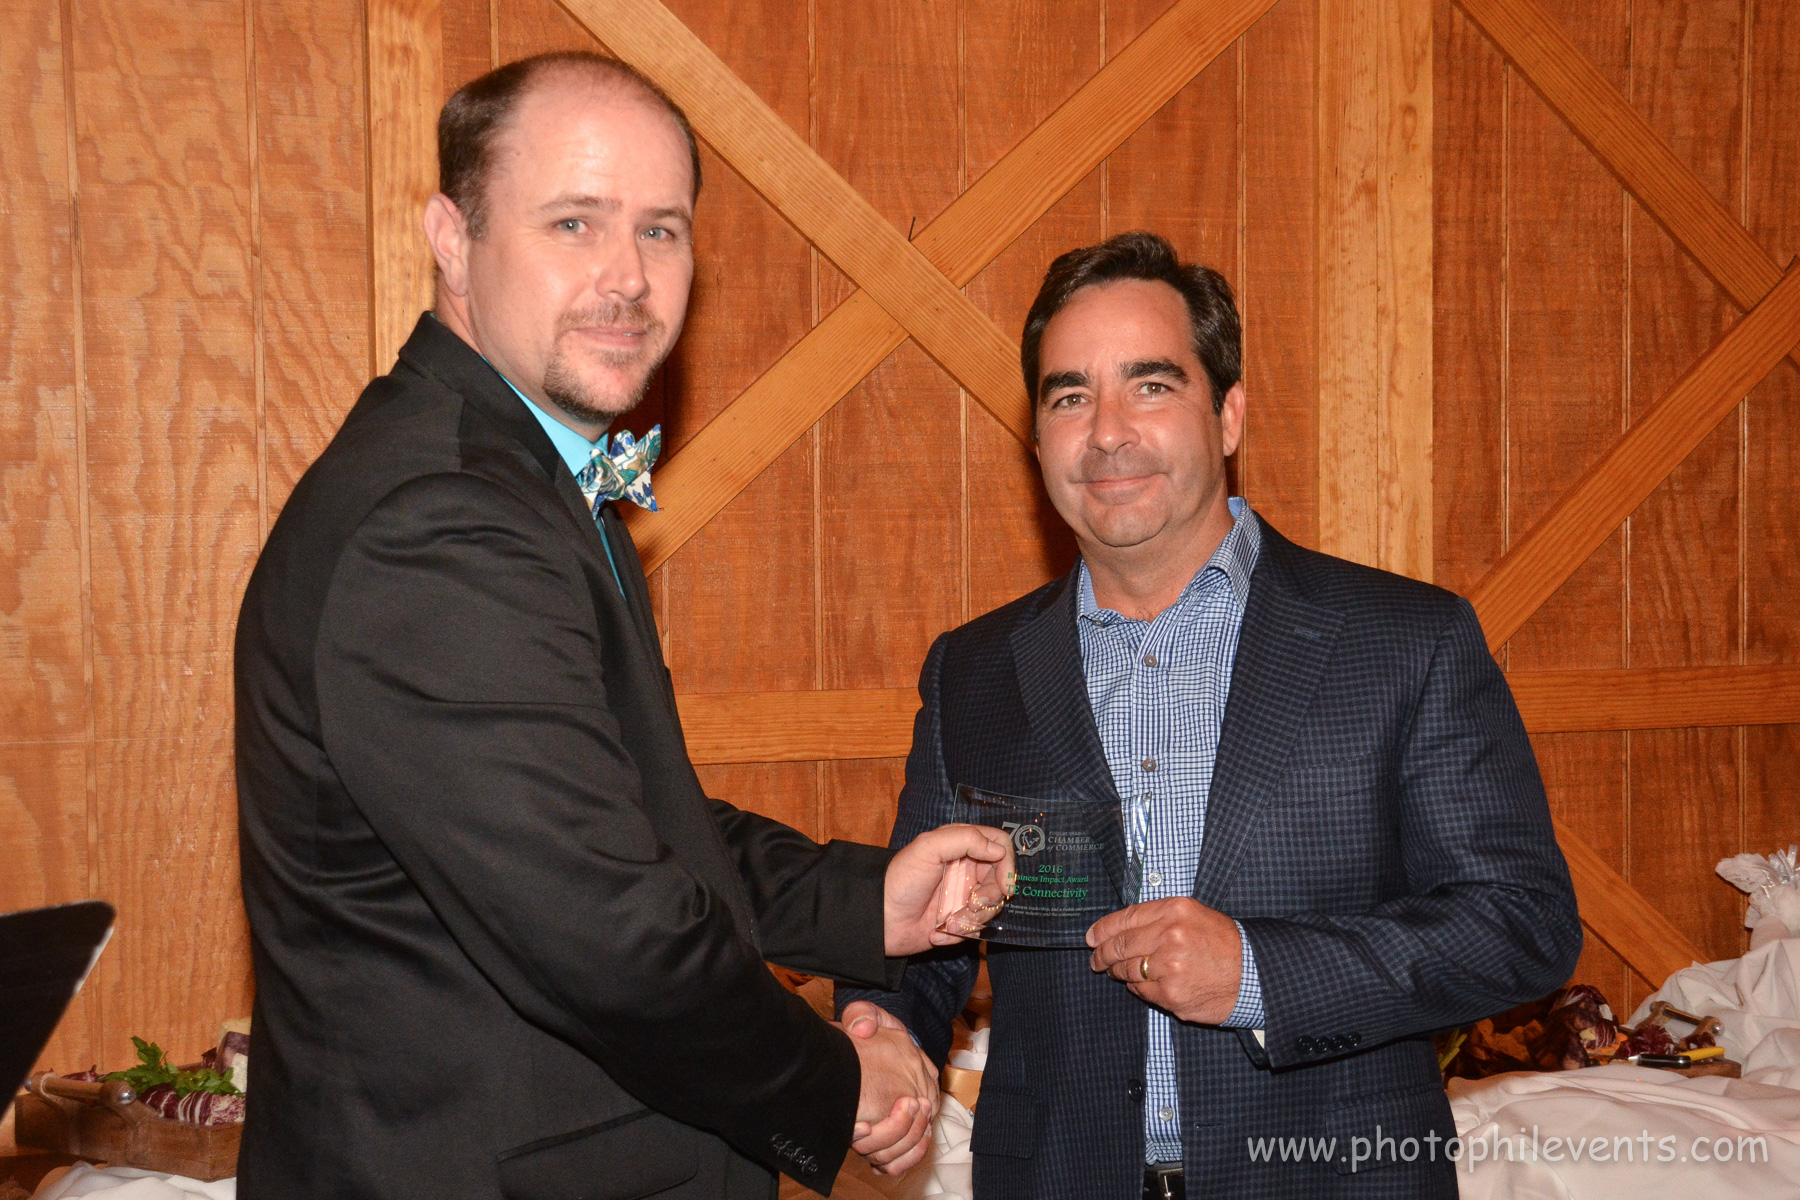 Mike Cole presents TE Connectivity with Business Impact Award